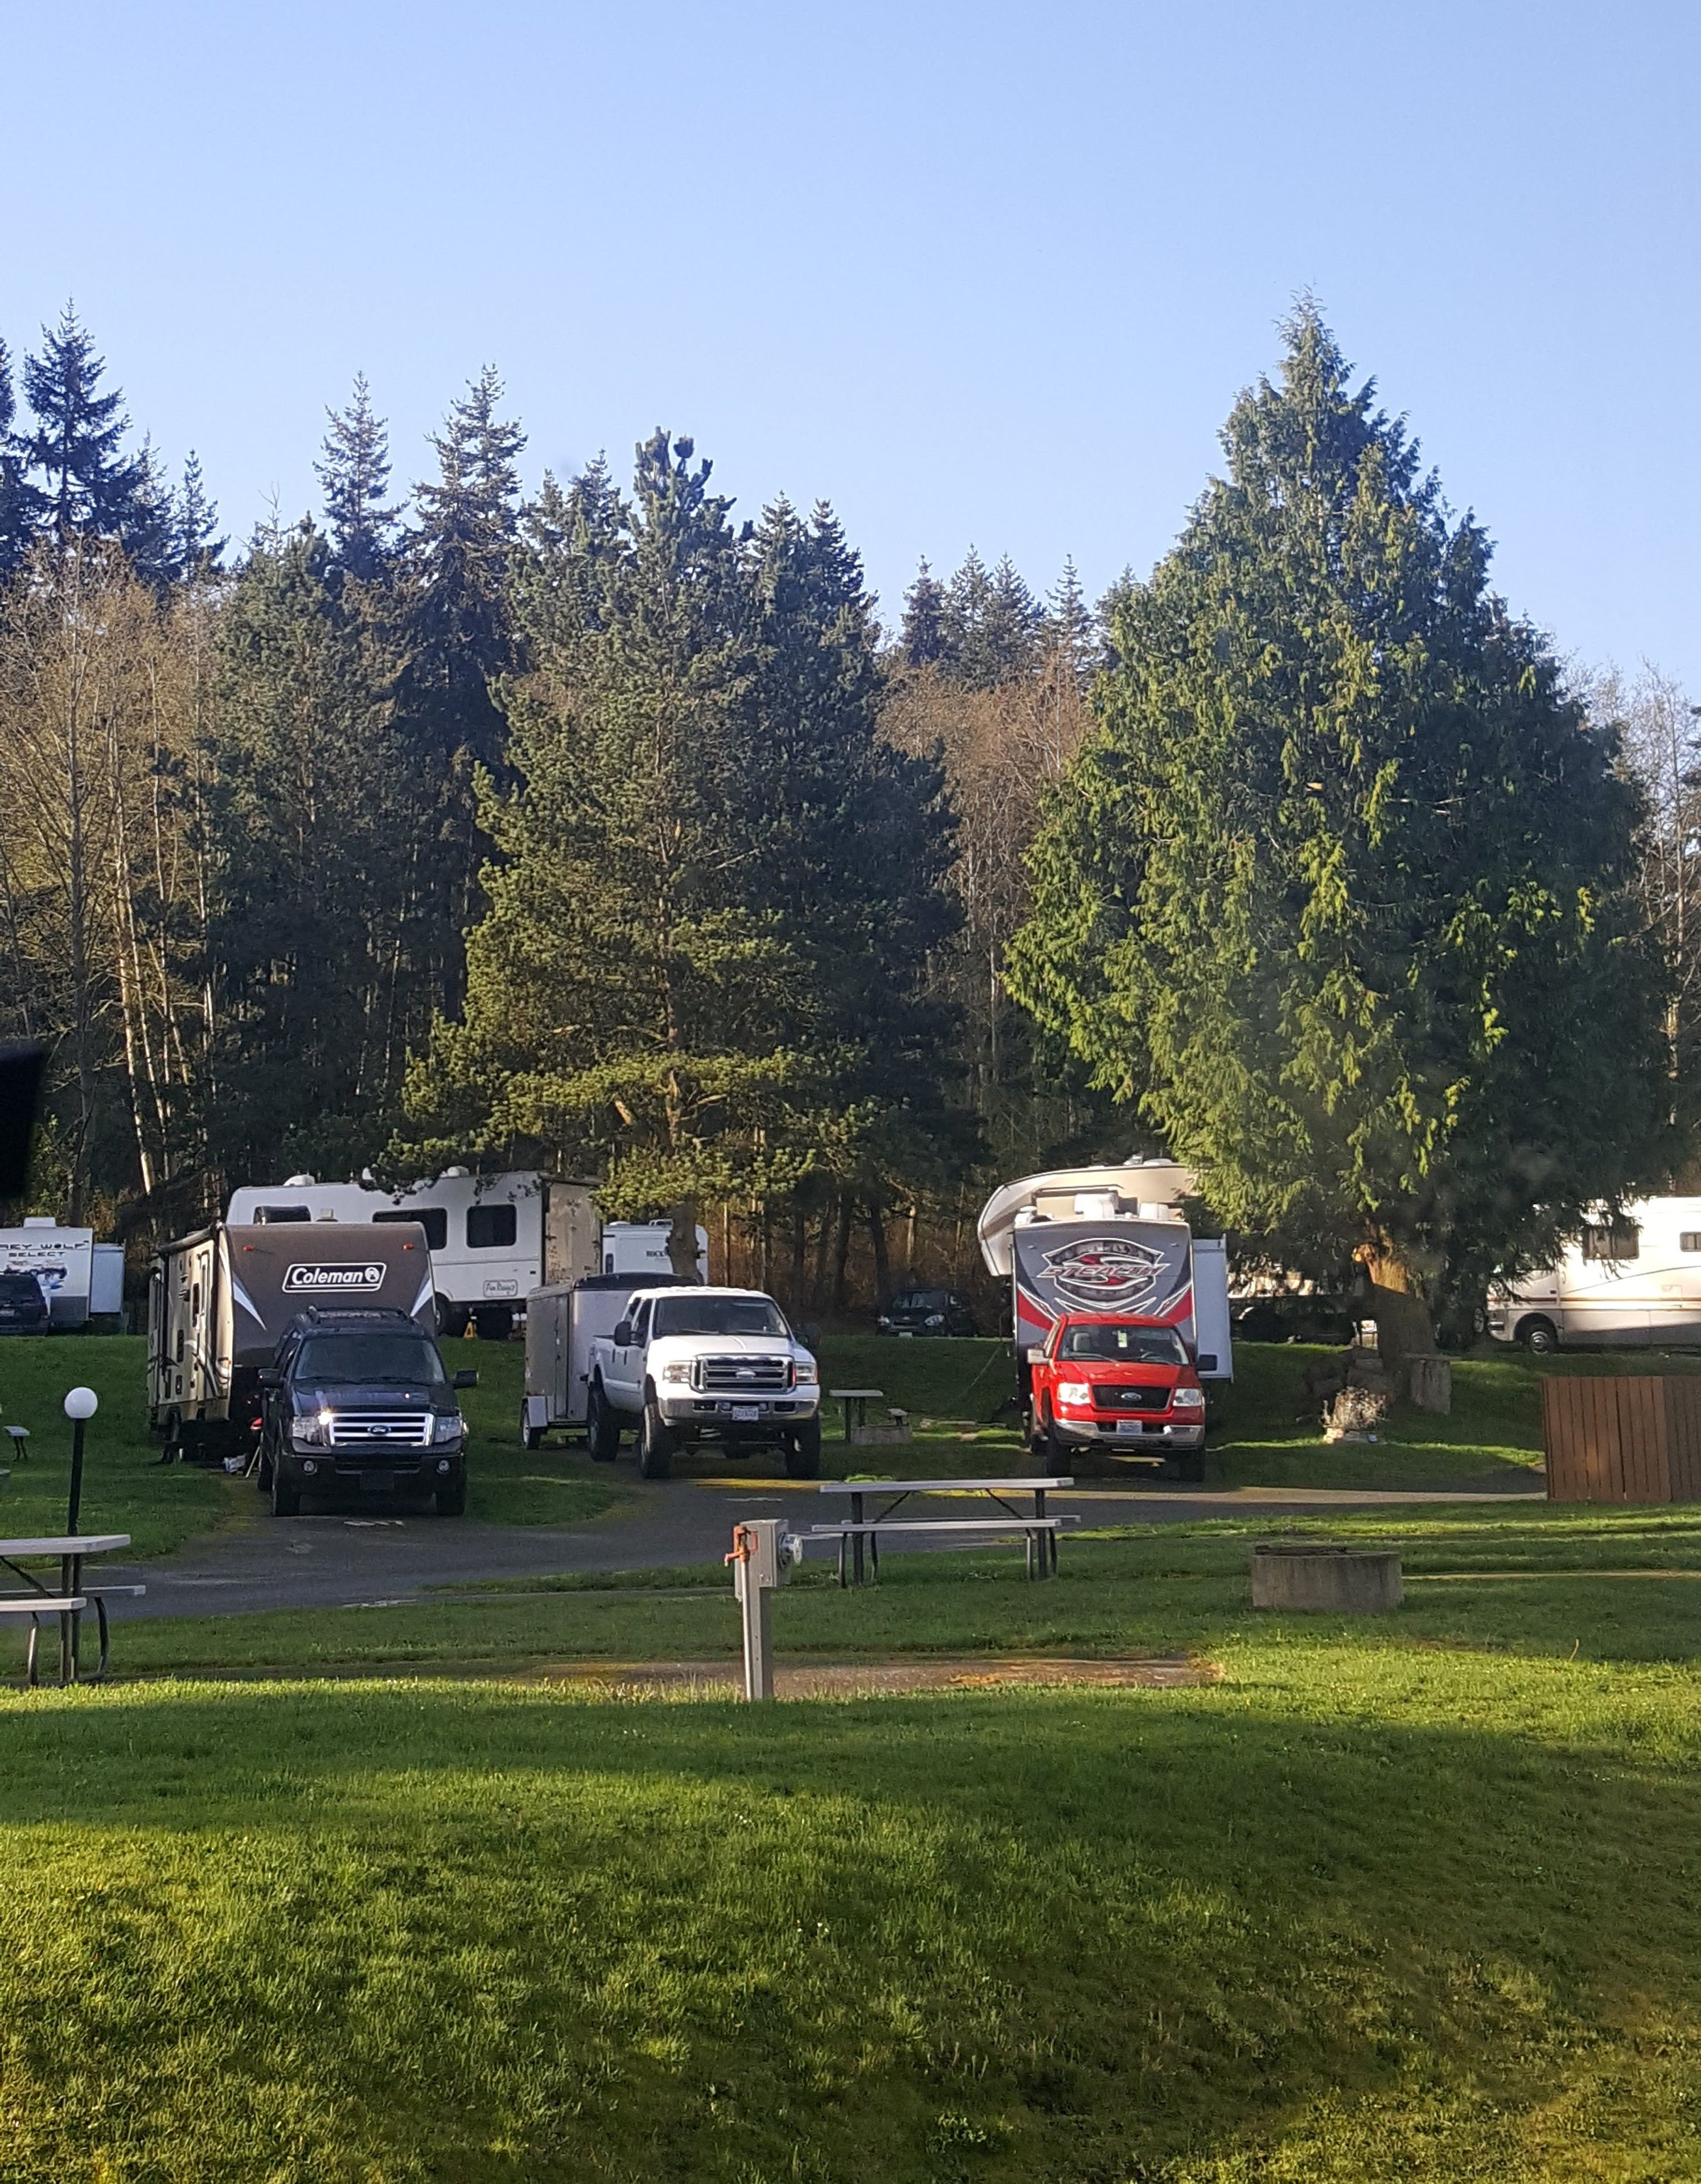 North Whidbey Rv Park Oak Harbor Washington Great Campground At Deception Pass Near Oak Harbor And Short Drive To Burlingto Rv Parks Vacation Trips Park